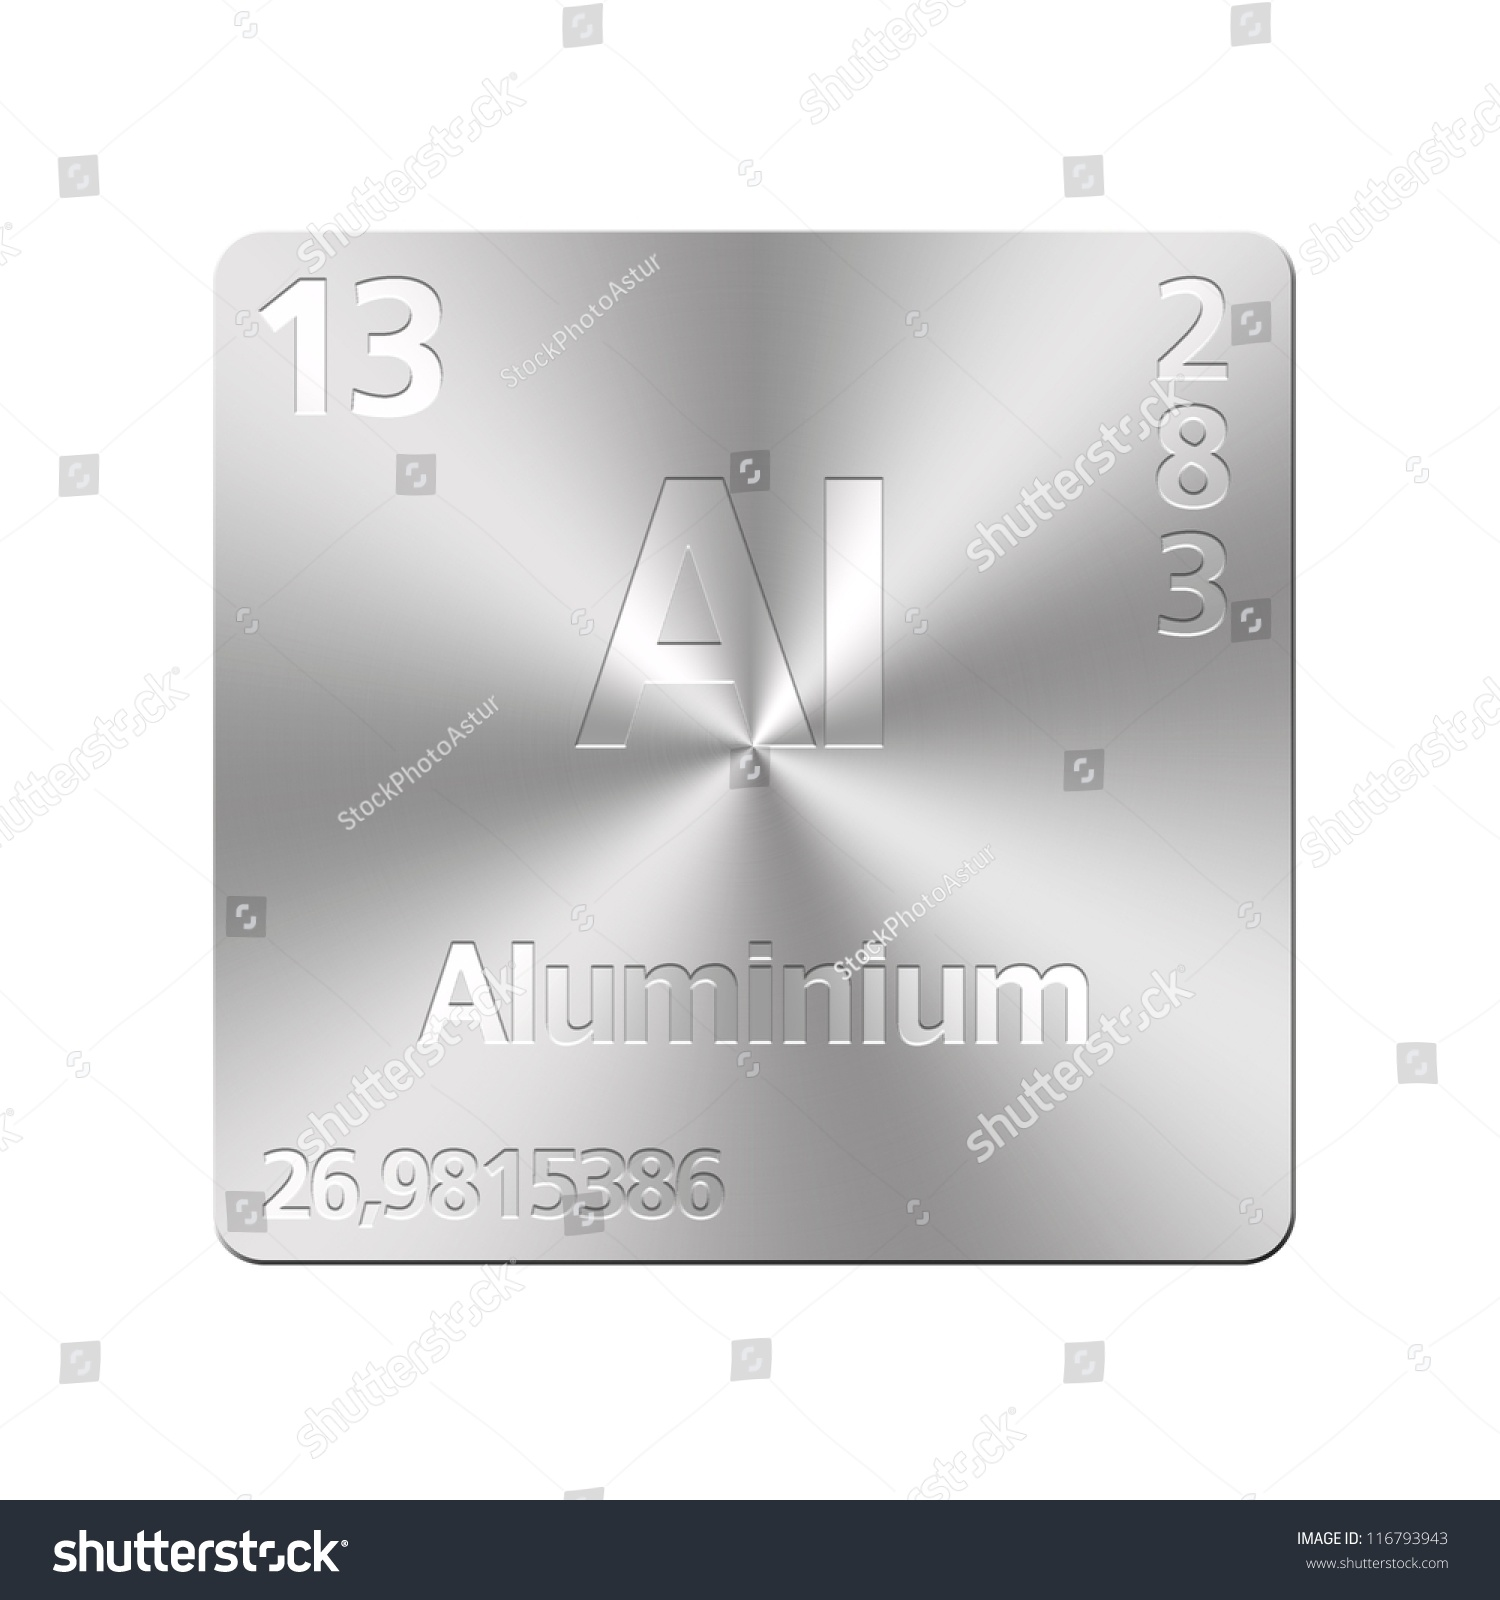 Pete mckee periodic table images periodic table images aluminium periodic table image collections periodic table images periodic table aluminium choice image periodic table images gamestrikefo Image collections